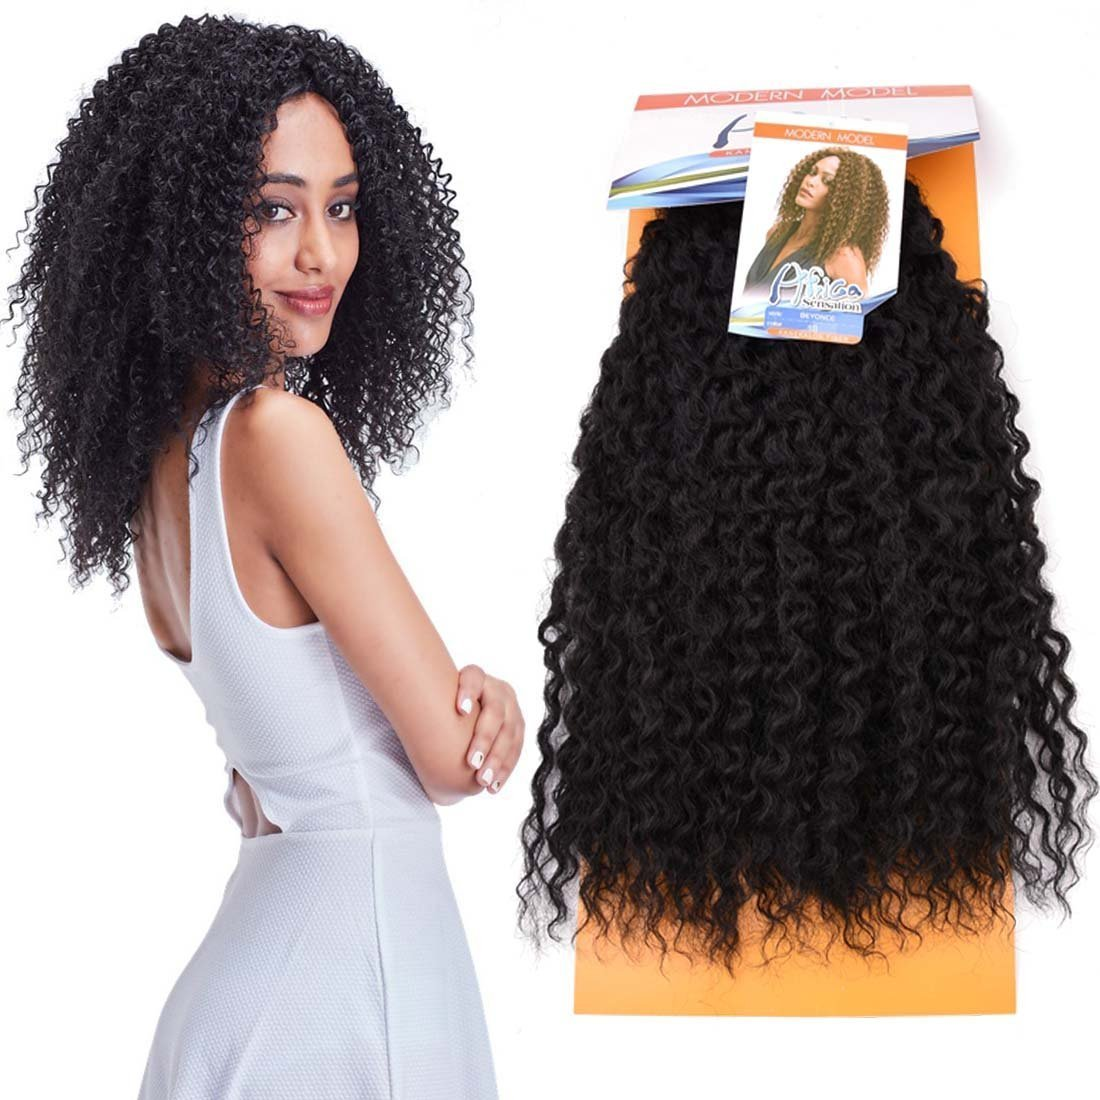 Amazon New Afro Curly Synthetic Hair Extensions African Women